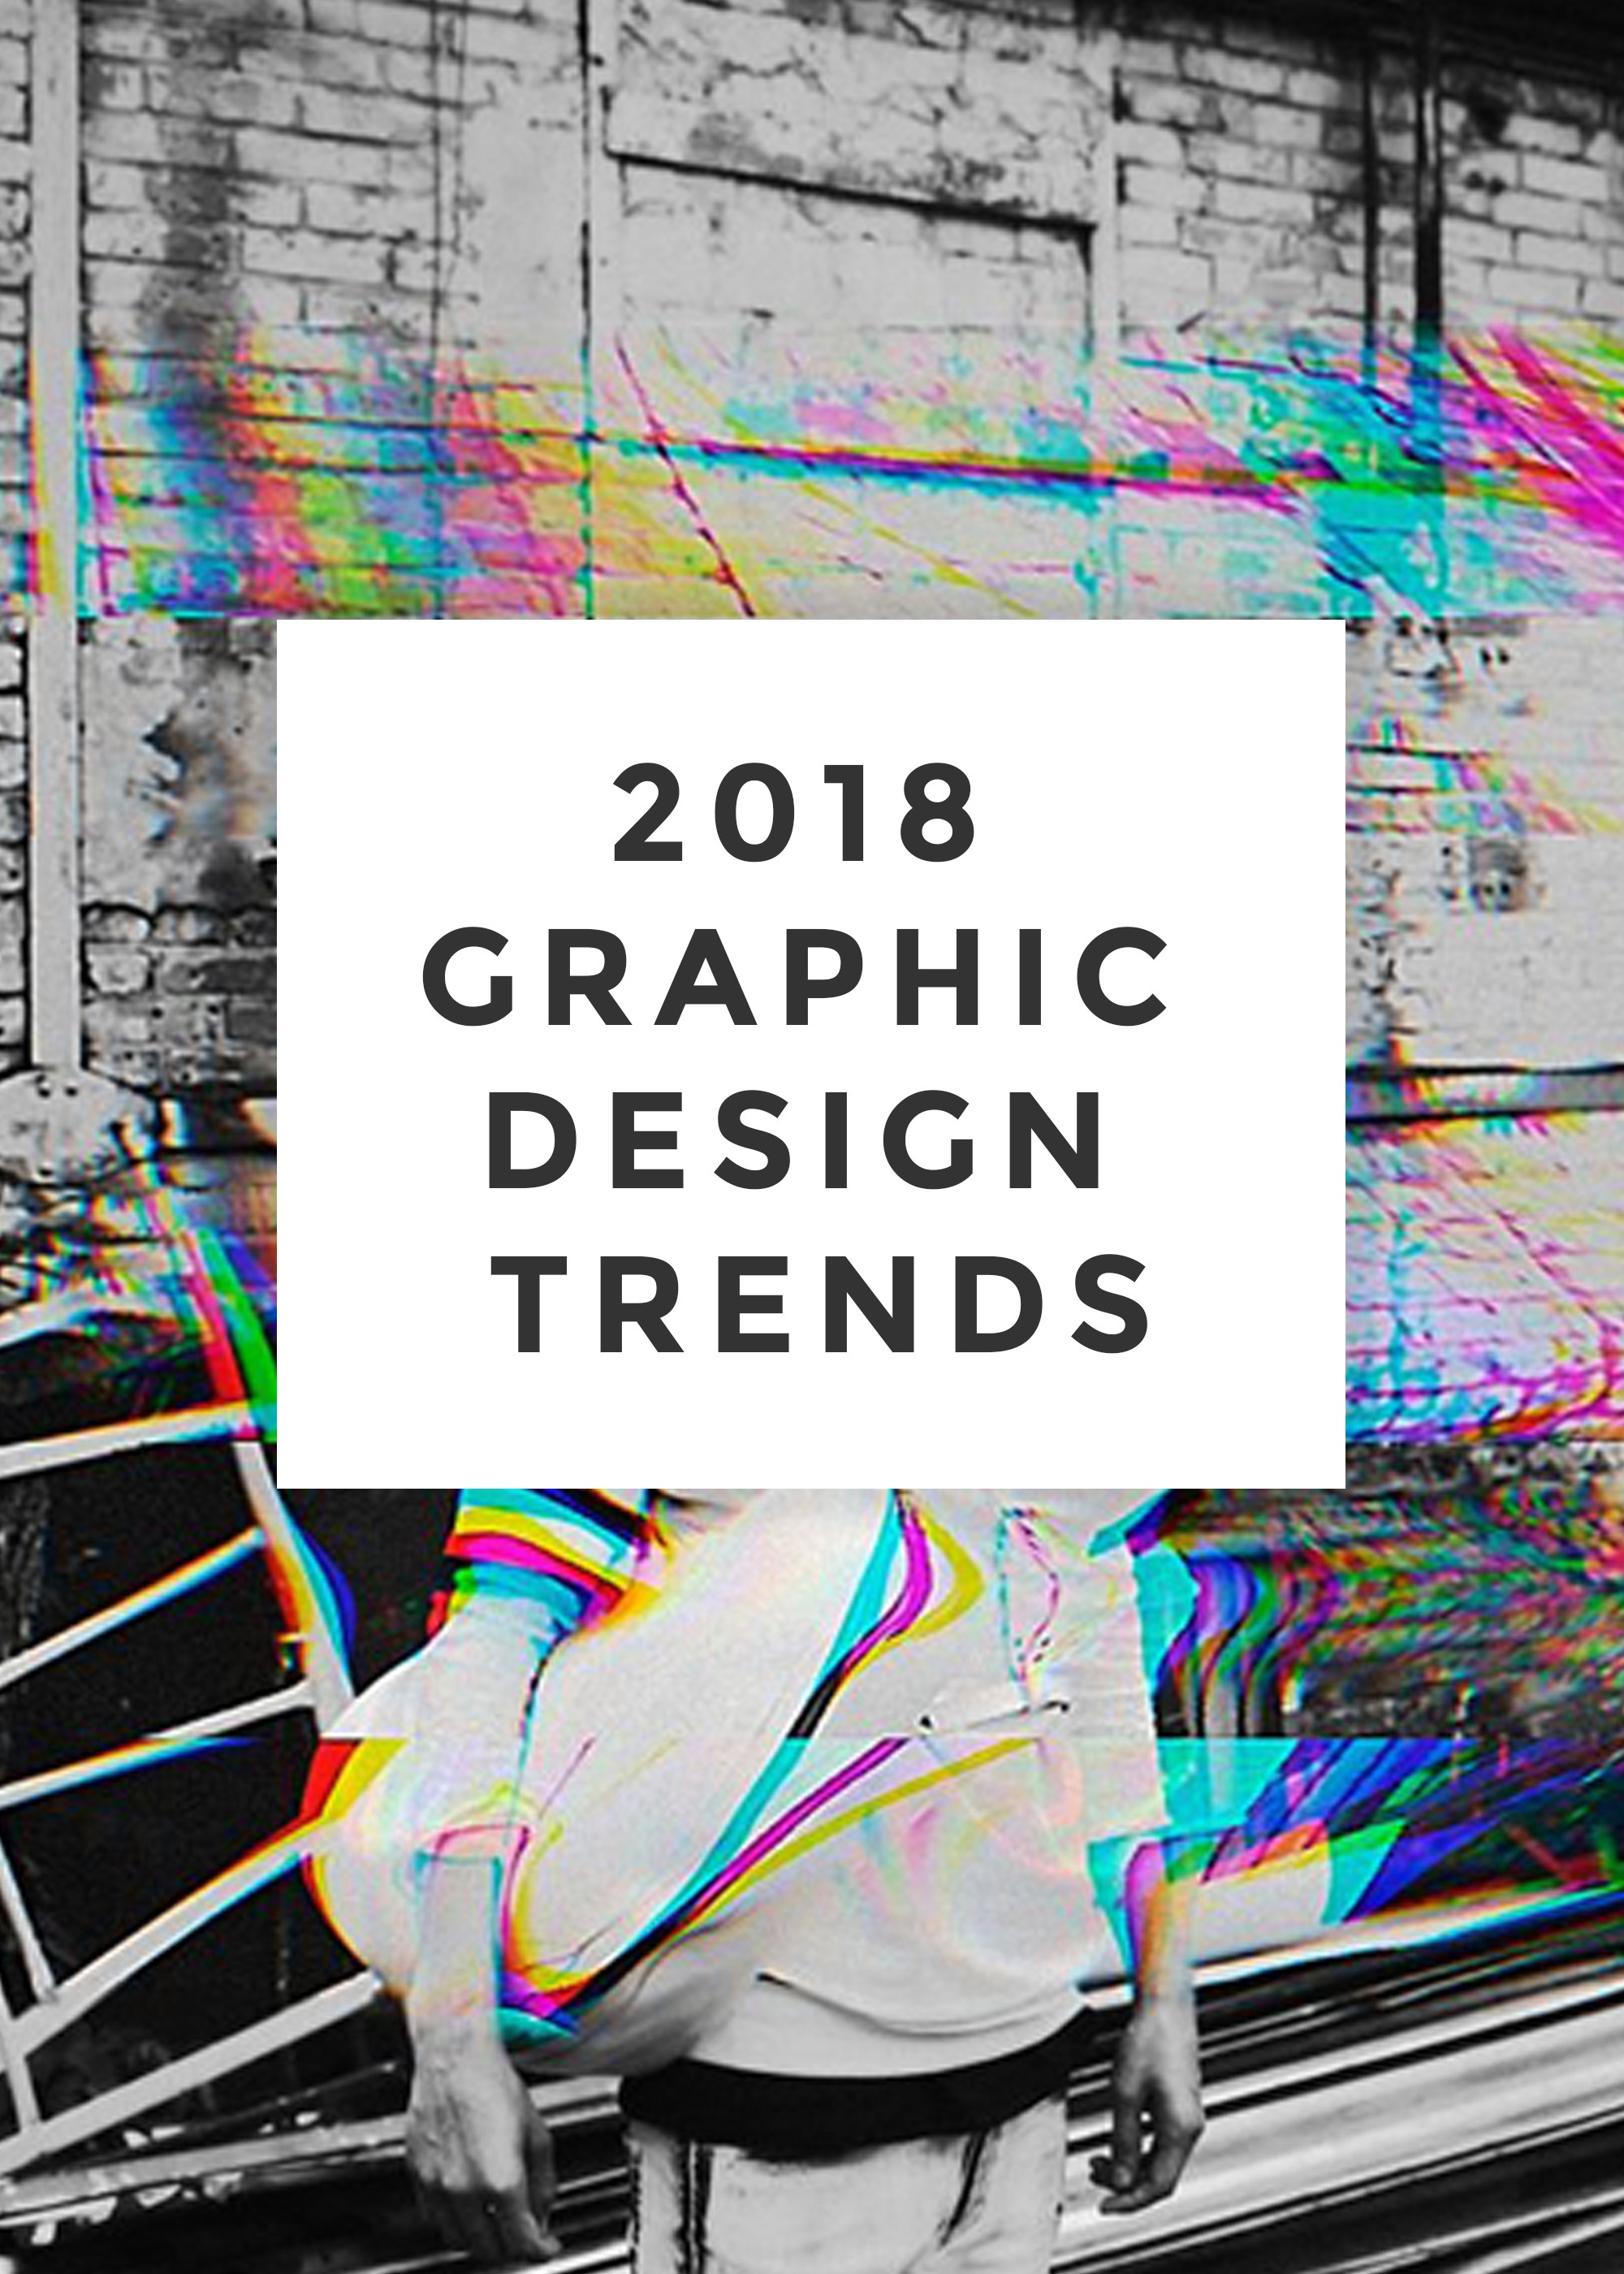 Trendy Graphic Design: 2018 Graphic Design Trends